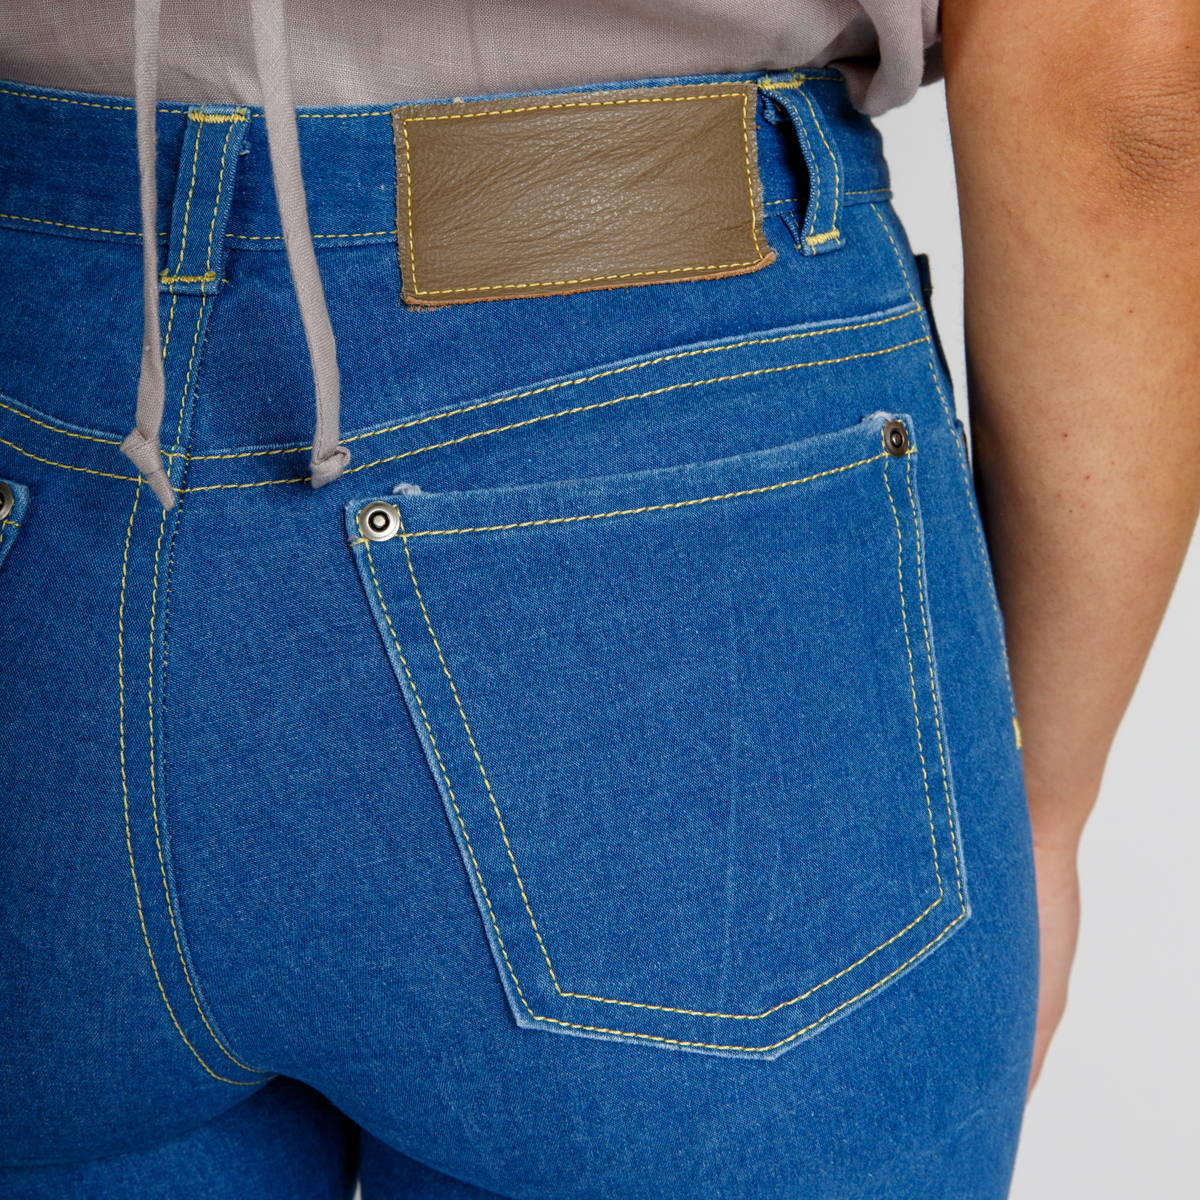 How to sew back pockets, yoke and back seam